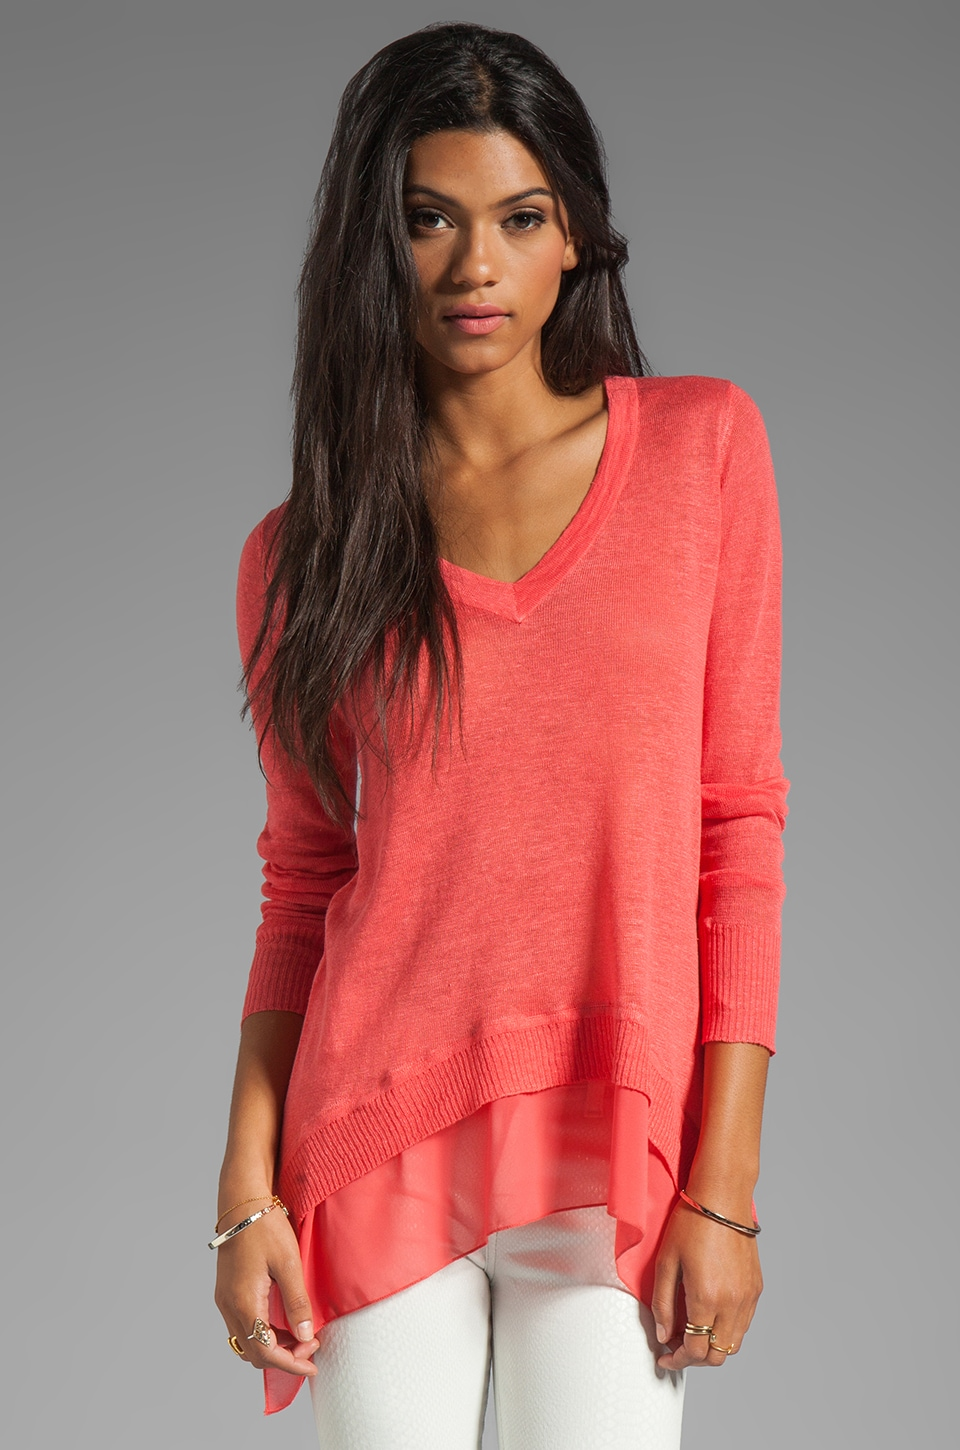 Central Park West Chapel Hill Top in Coral